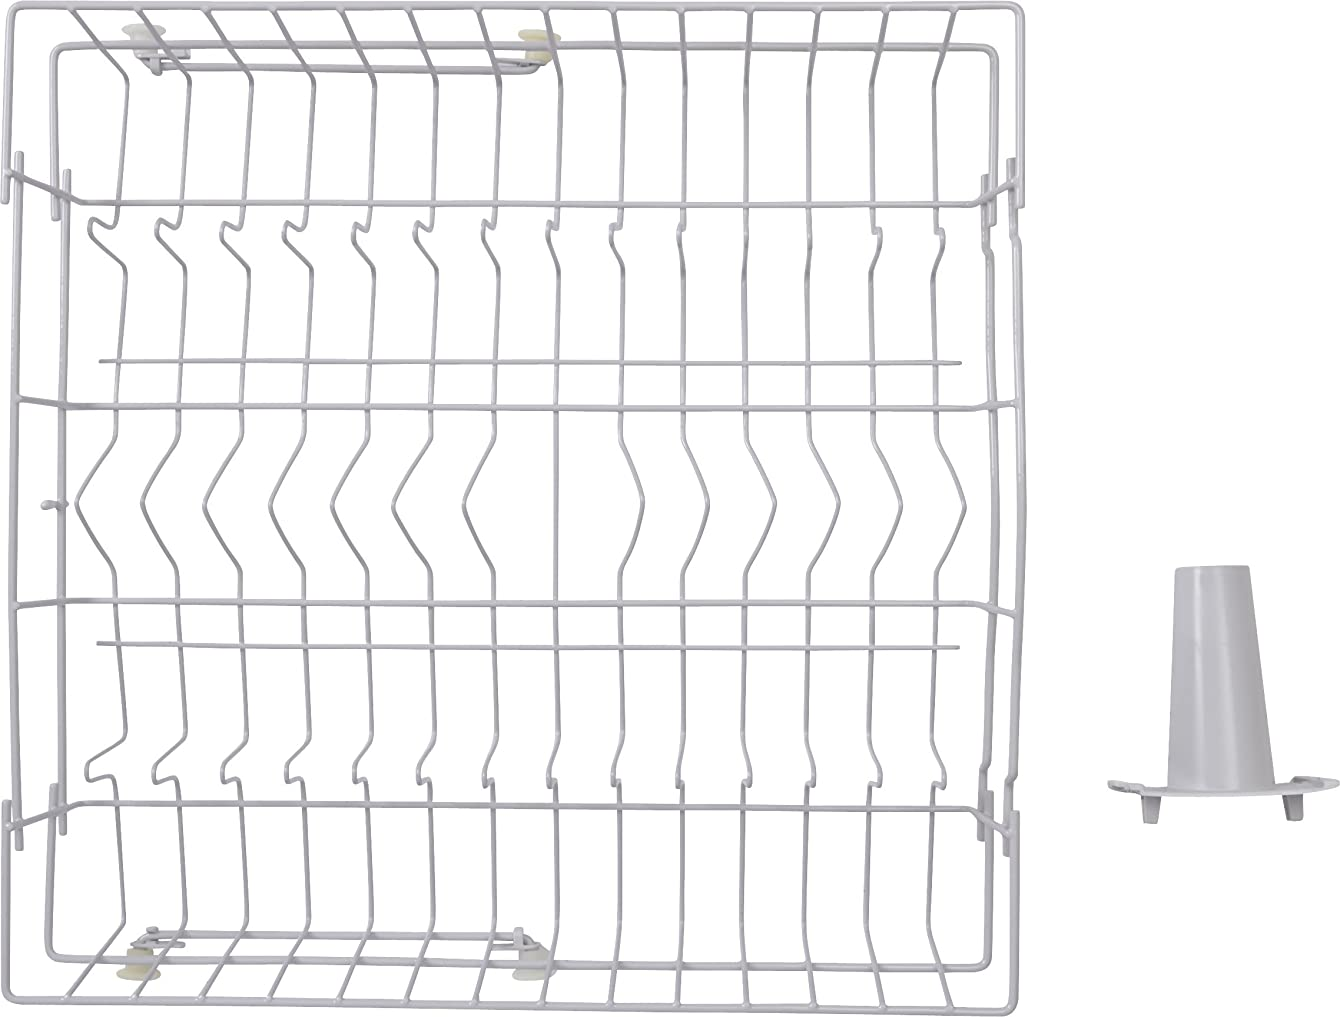 General Electric WD28X10369  Upper Dish Rack Assembly